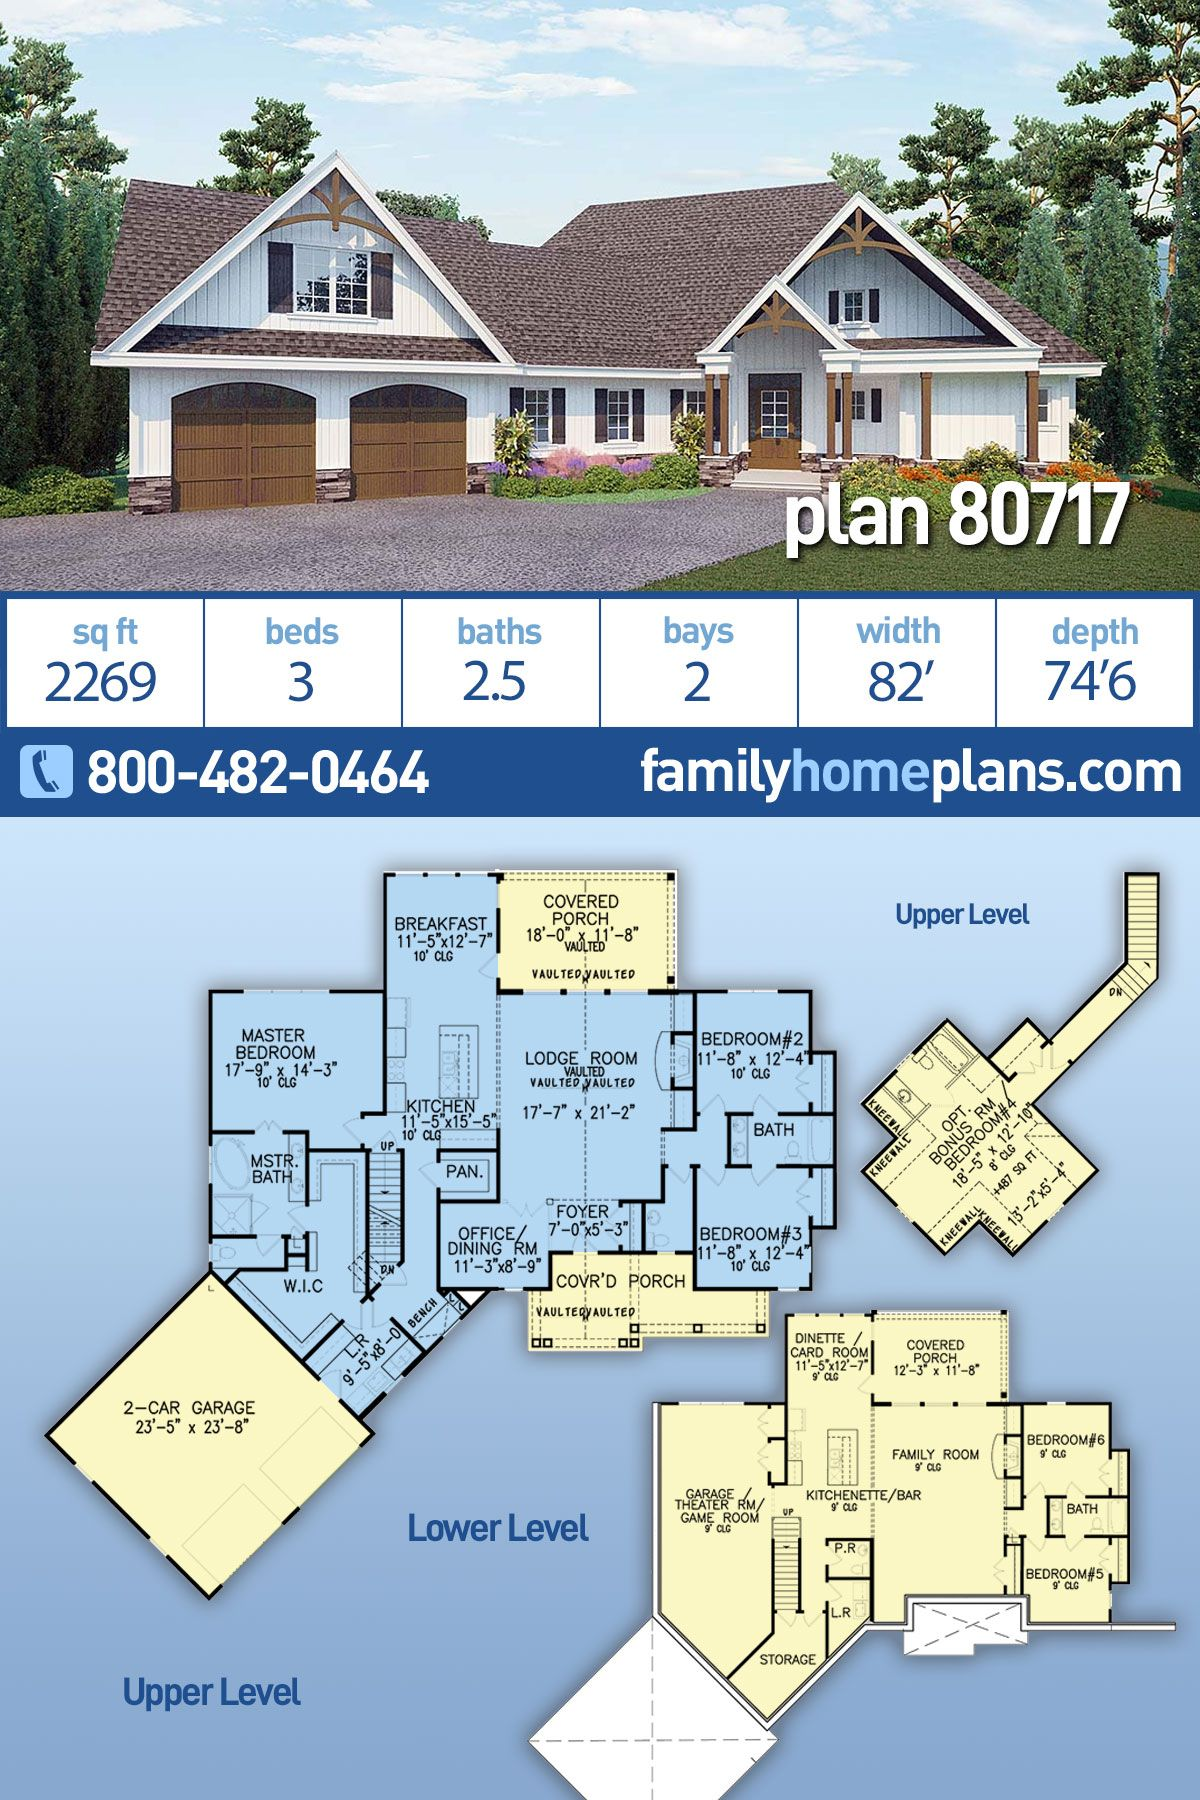 Craftsman Style House Plan 80717 With 3 Bed 3 Bath 2 Car Garage In 2020 Craftsman Style House Plans Craftsman House Craftsman House Plans